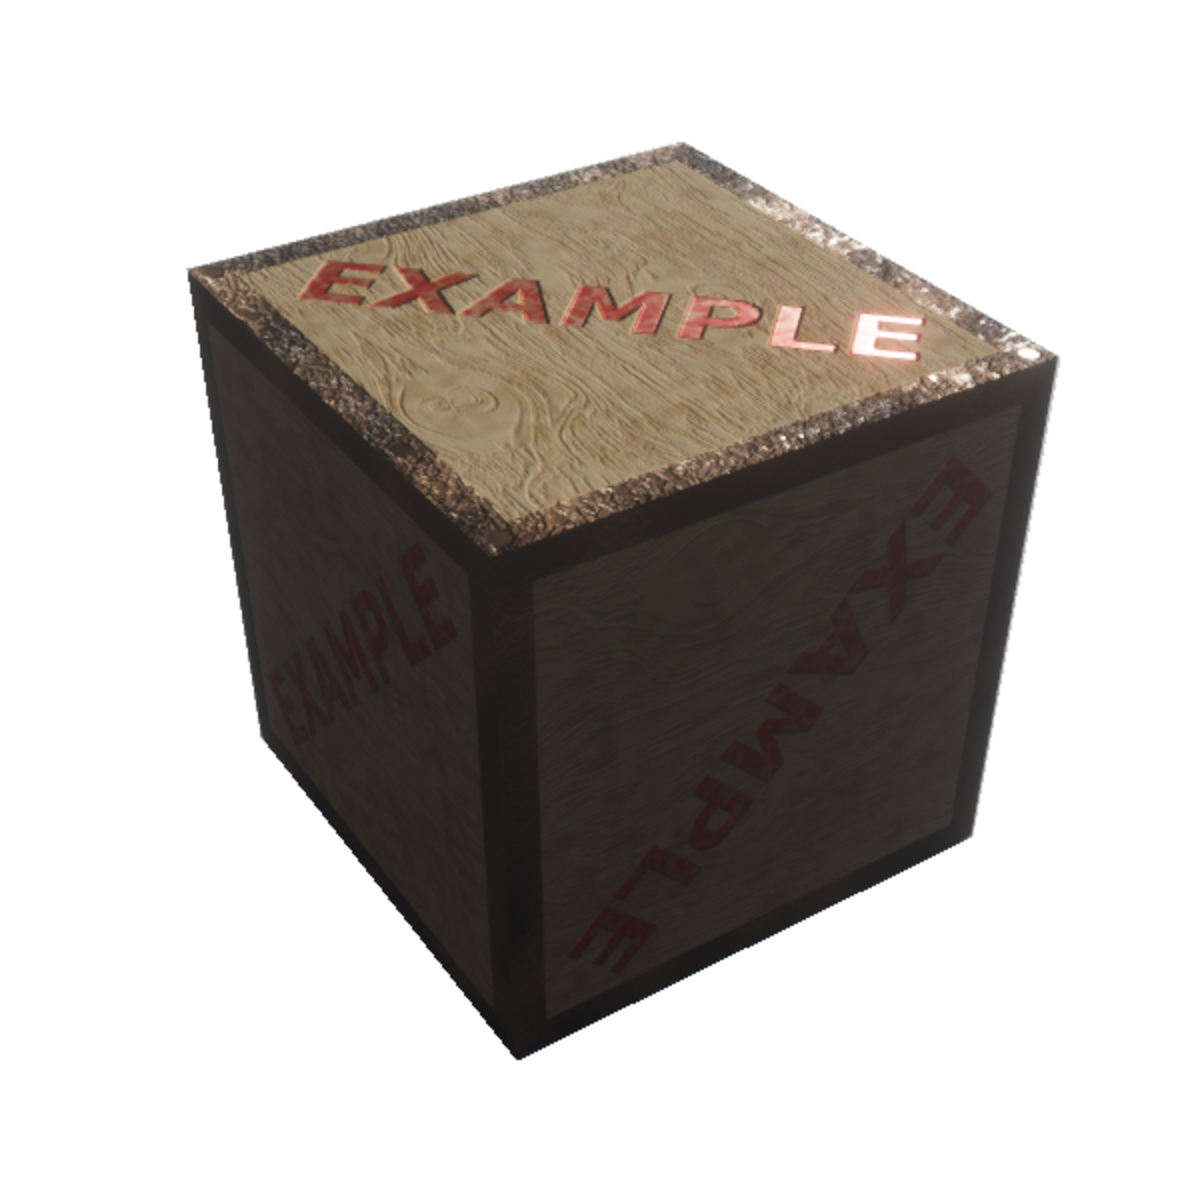 Sansar Example Crate 1.0